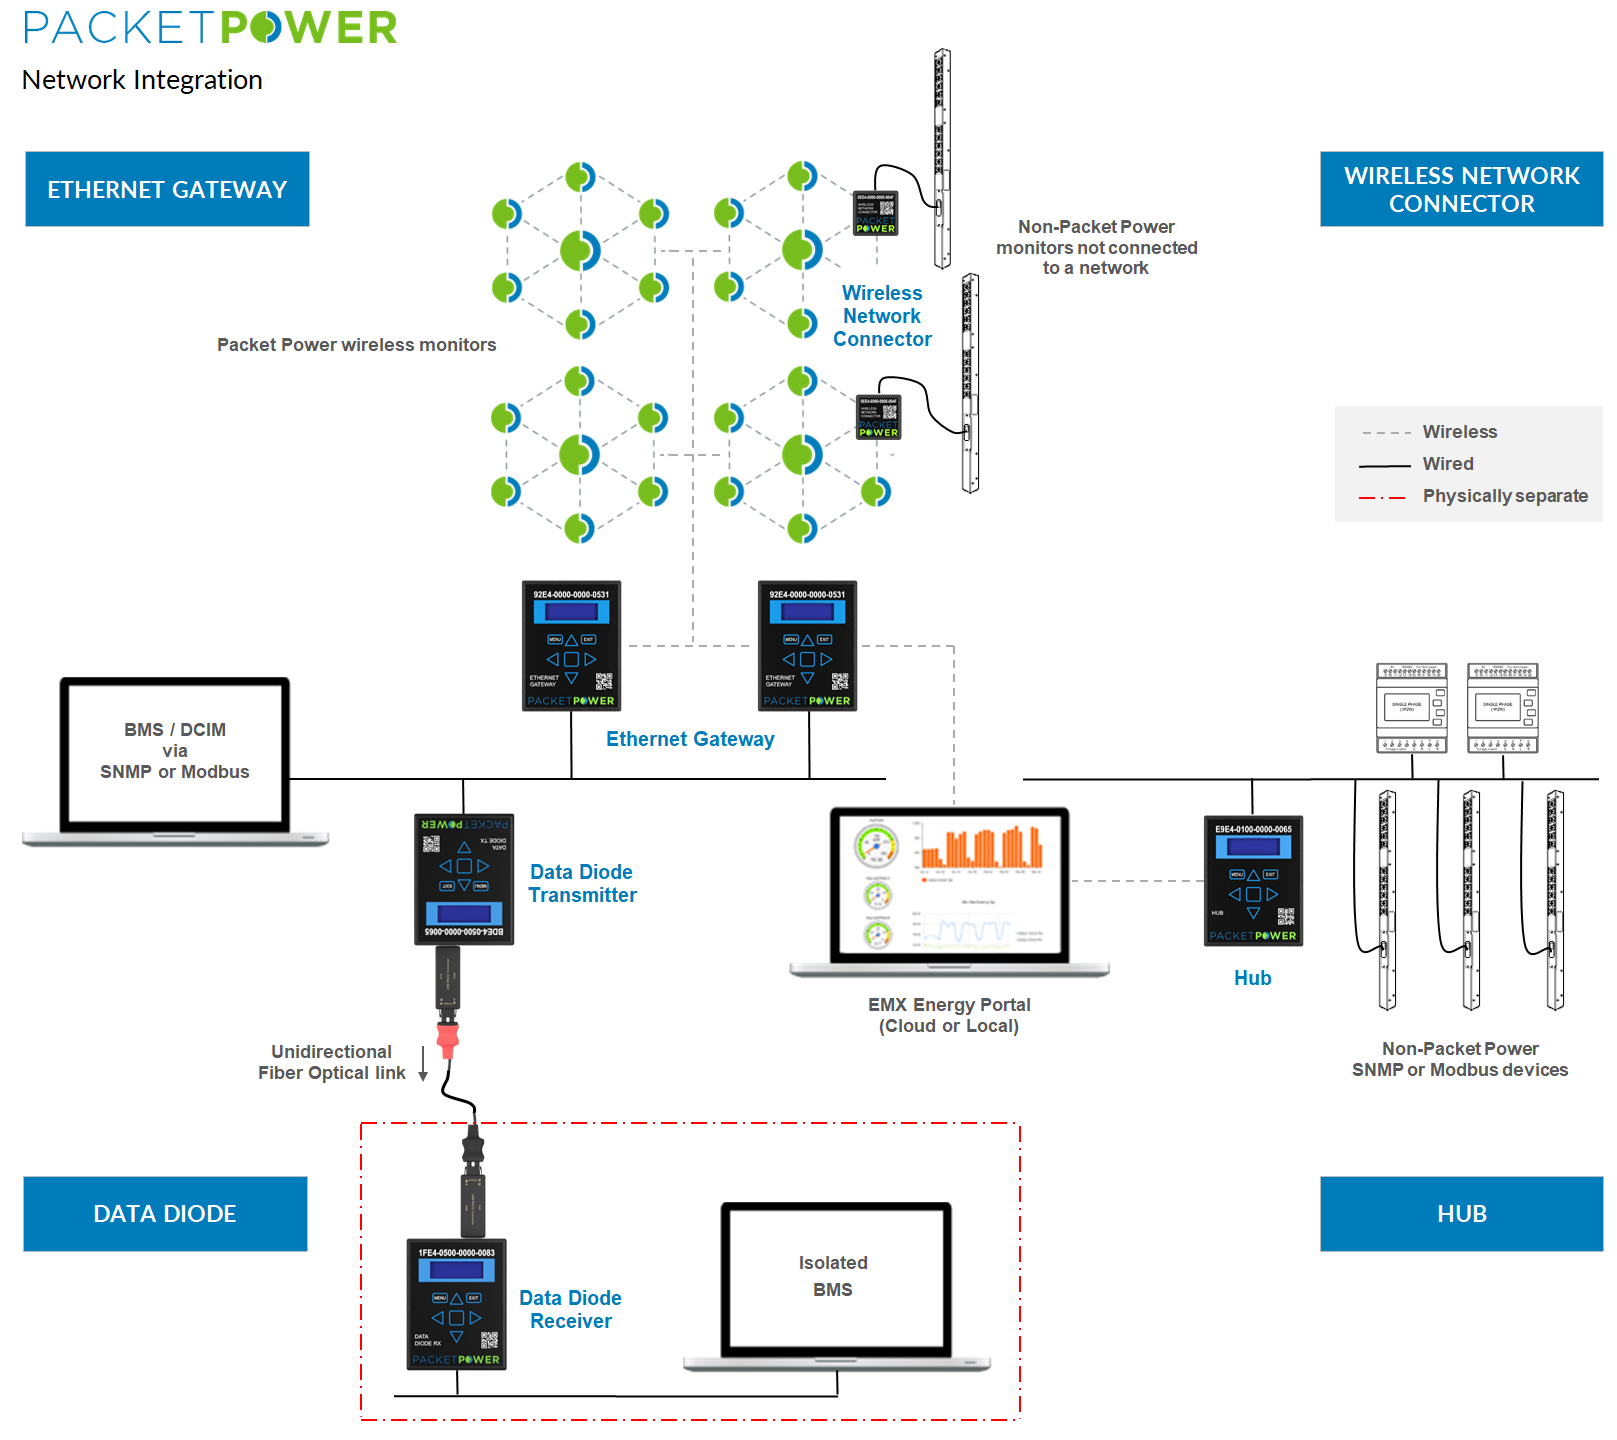 Packet Power Network Integration overview